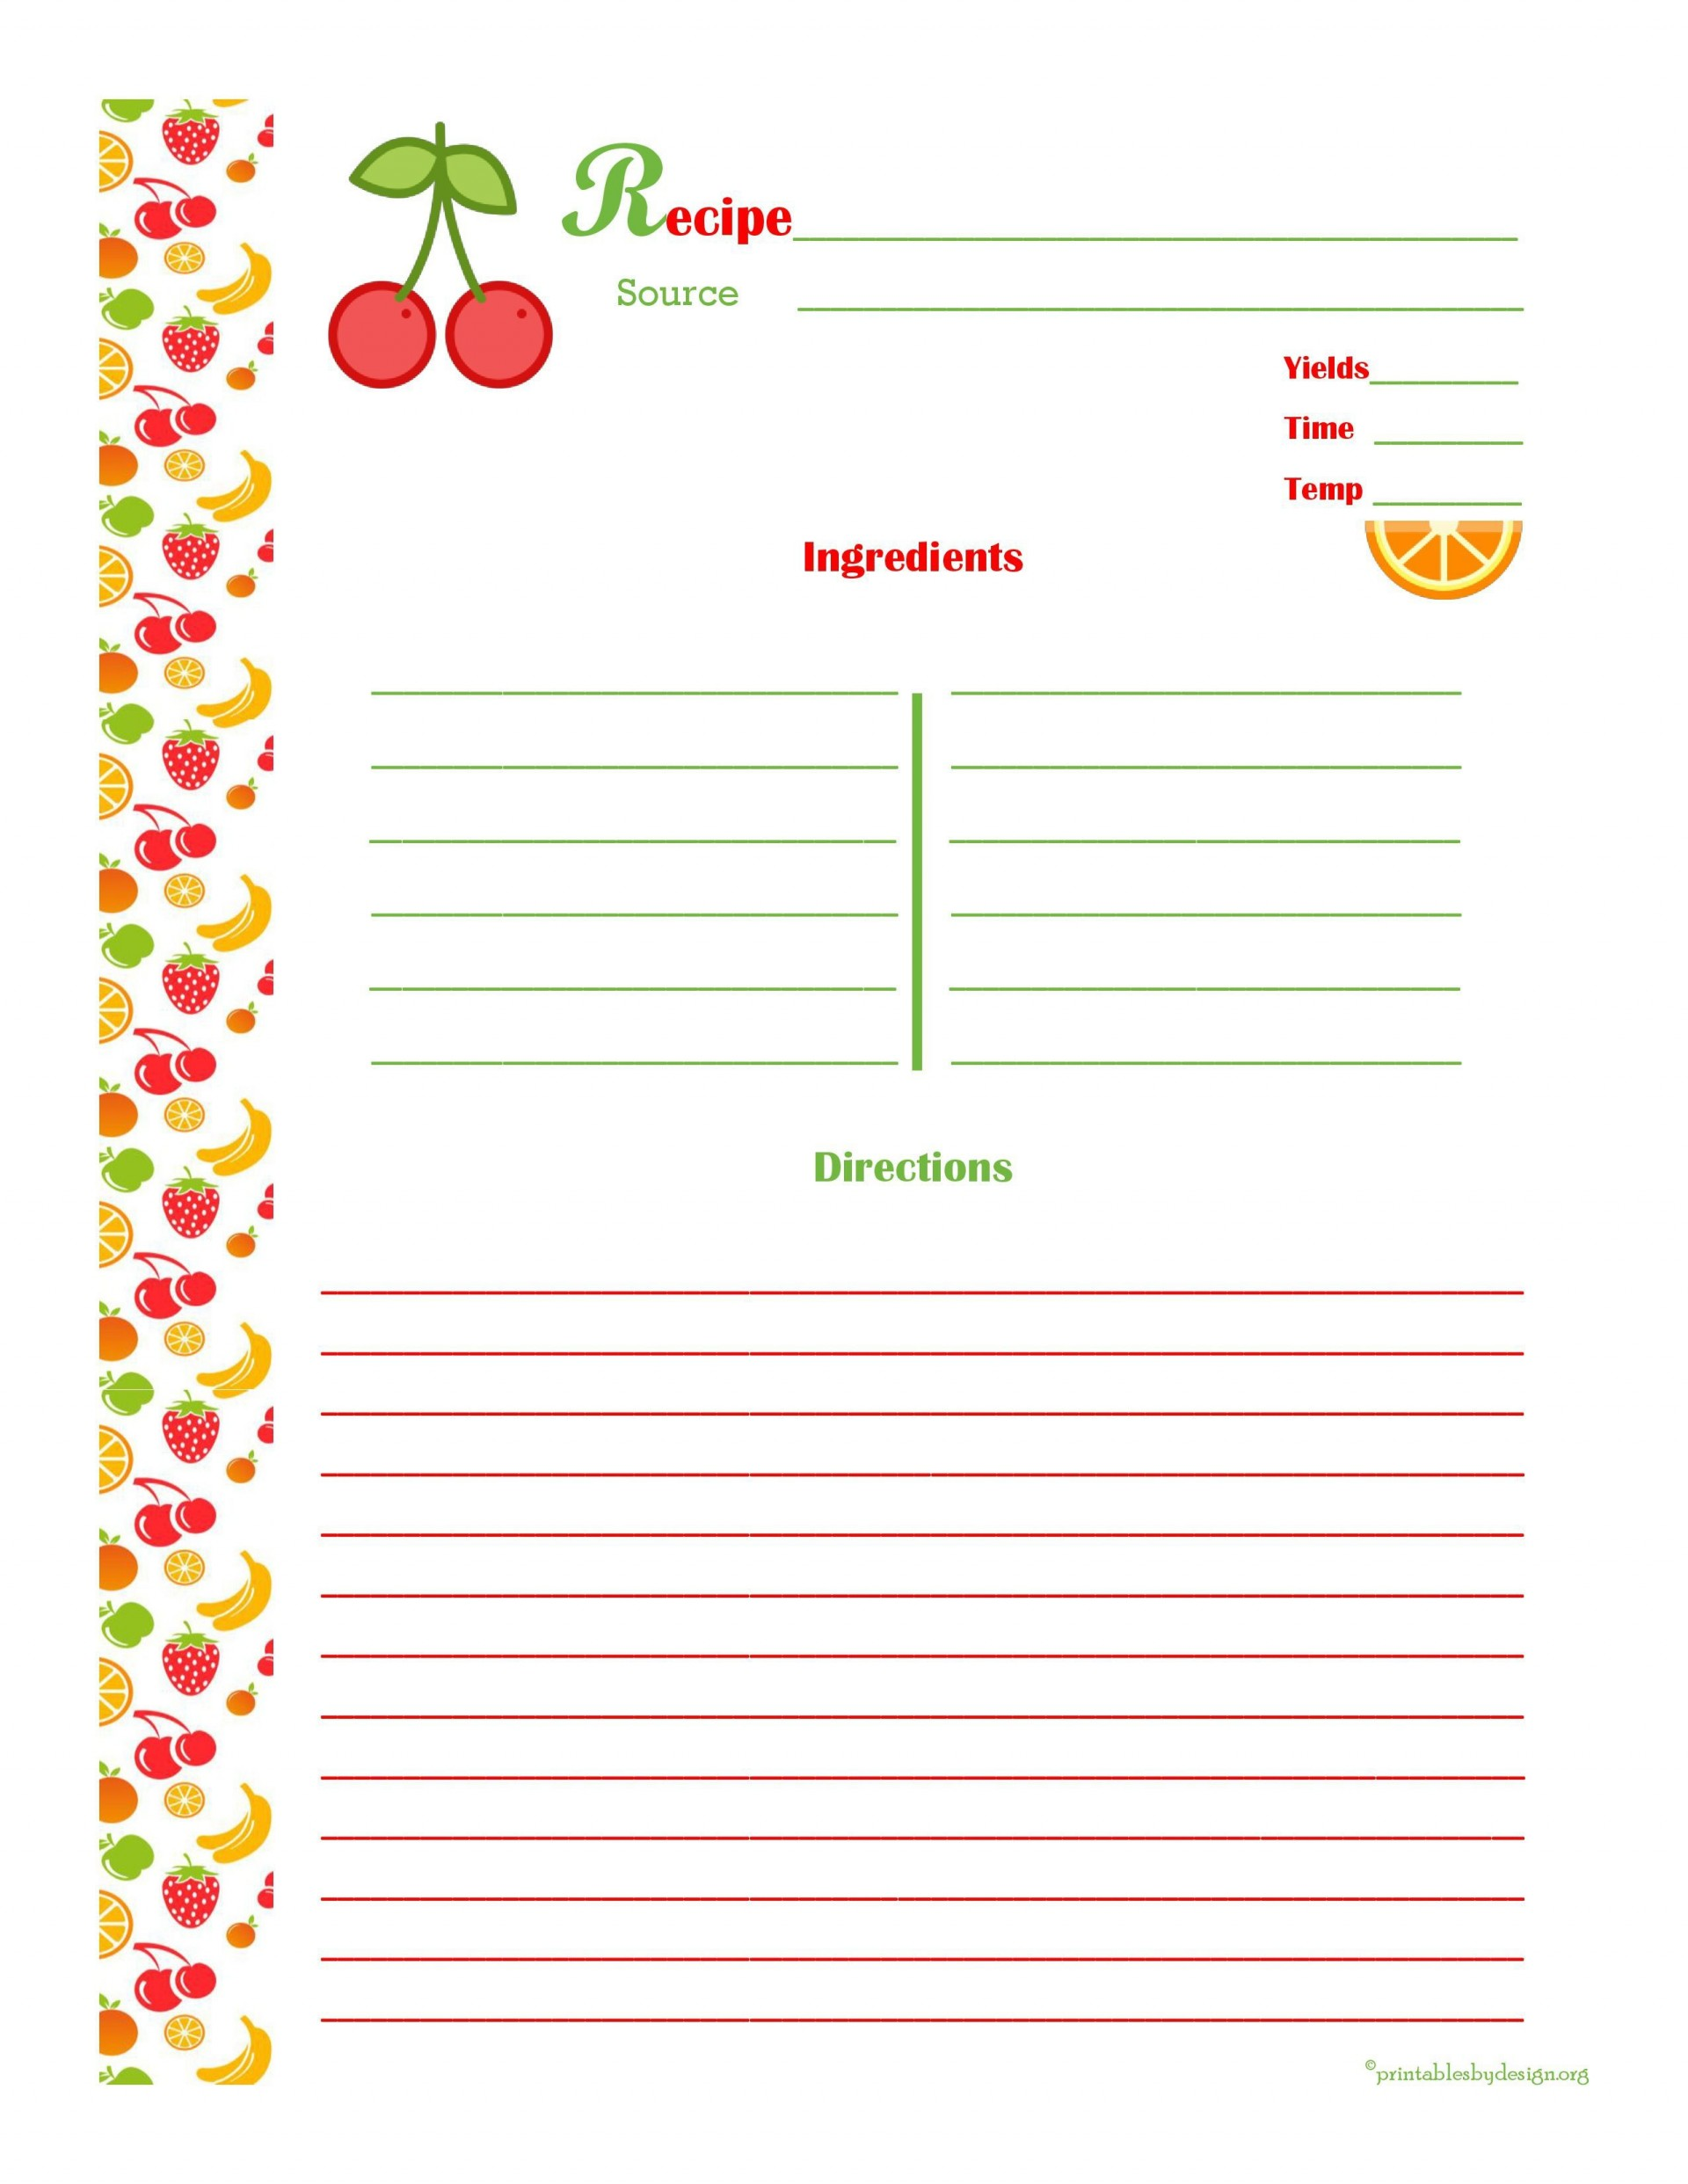 013 Imposing Free Recipe Template For Word Highest Quality  Book Editable Card Microsoft 4x6 Page1920